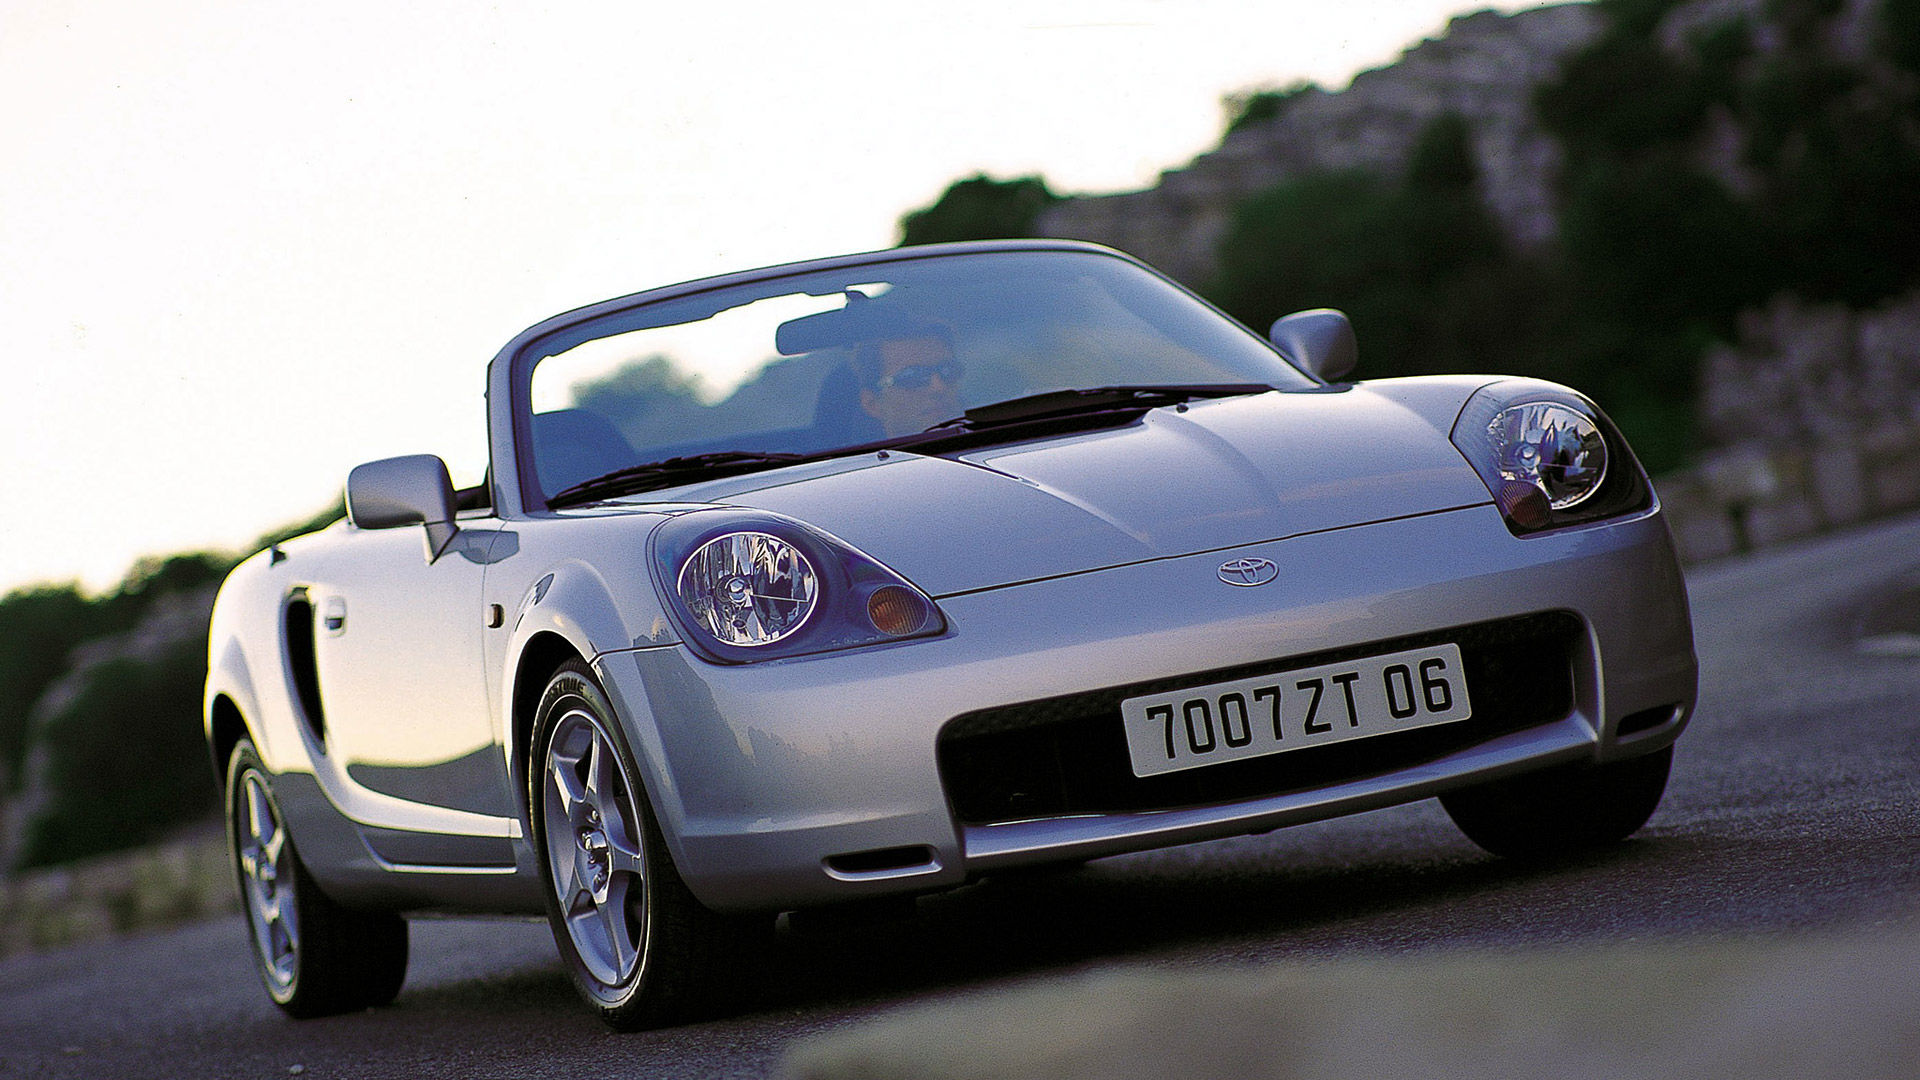 1999 Toyota MR2 Roadster